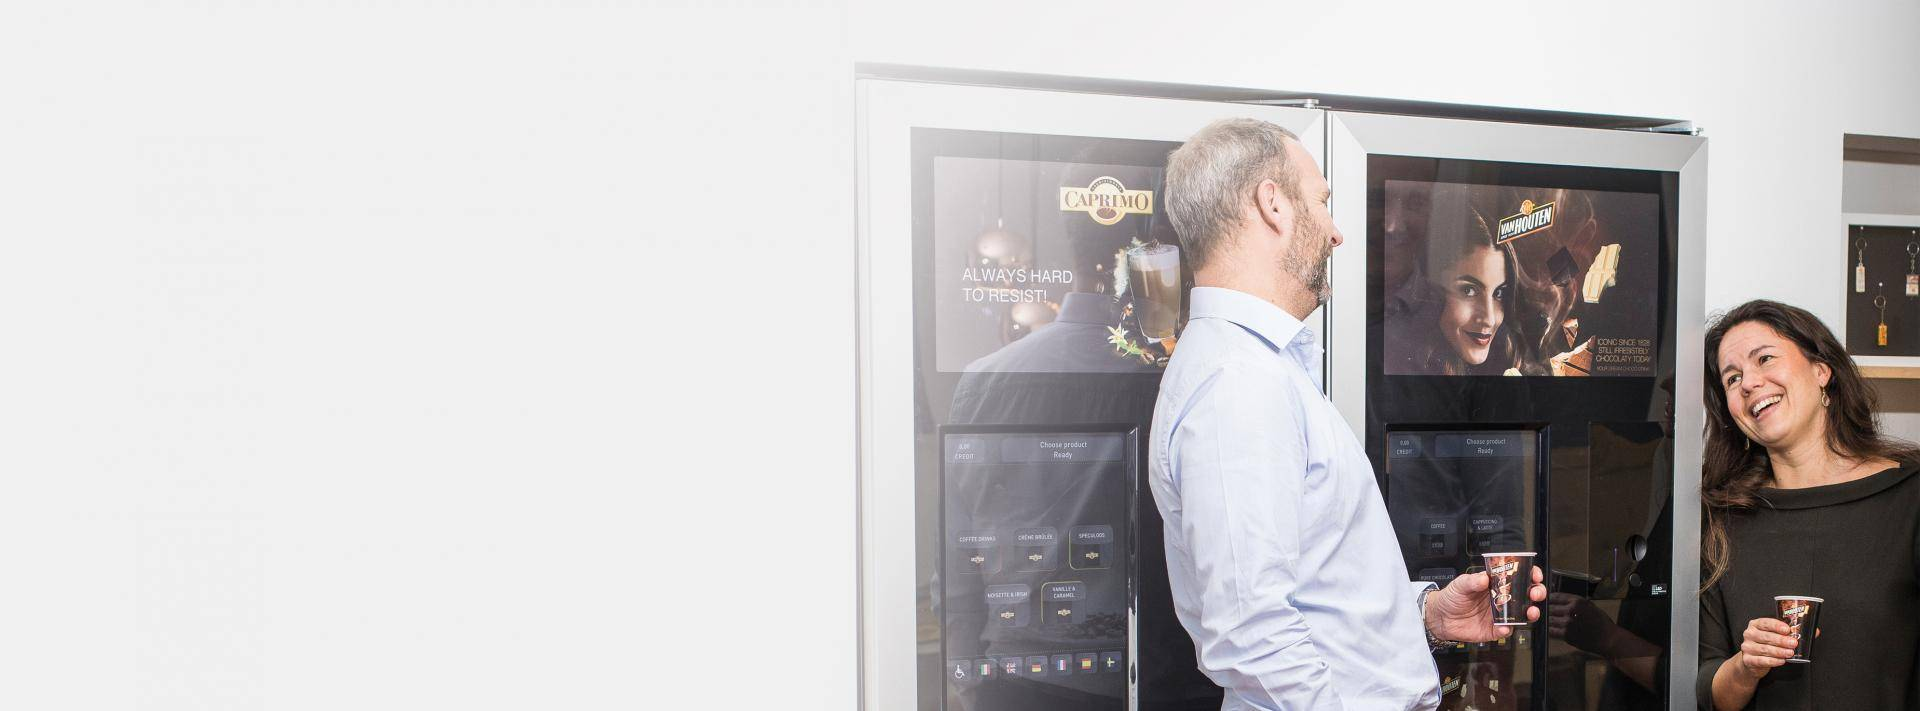 Man at vending machine with woman